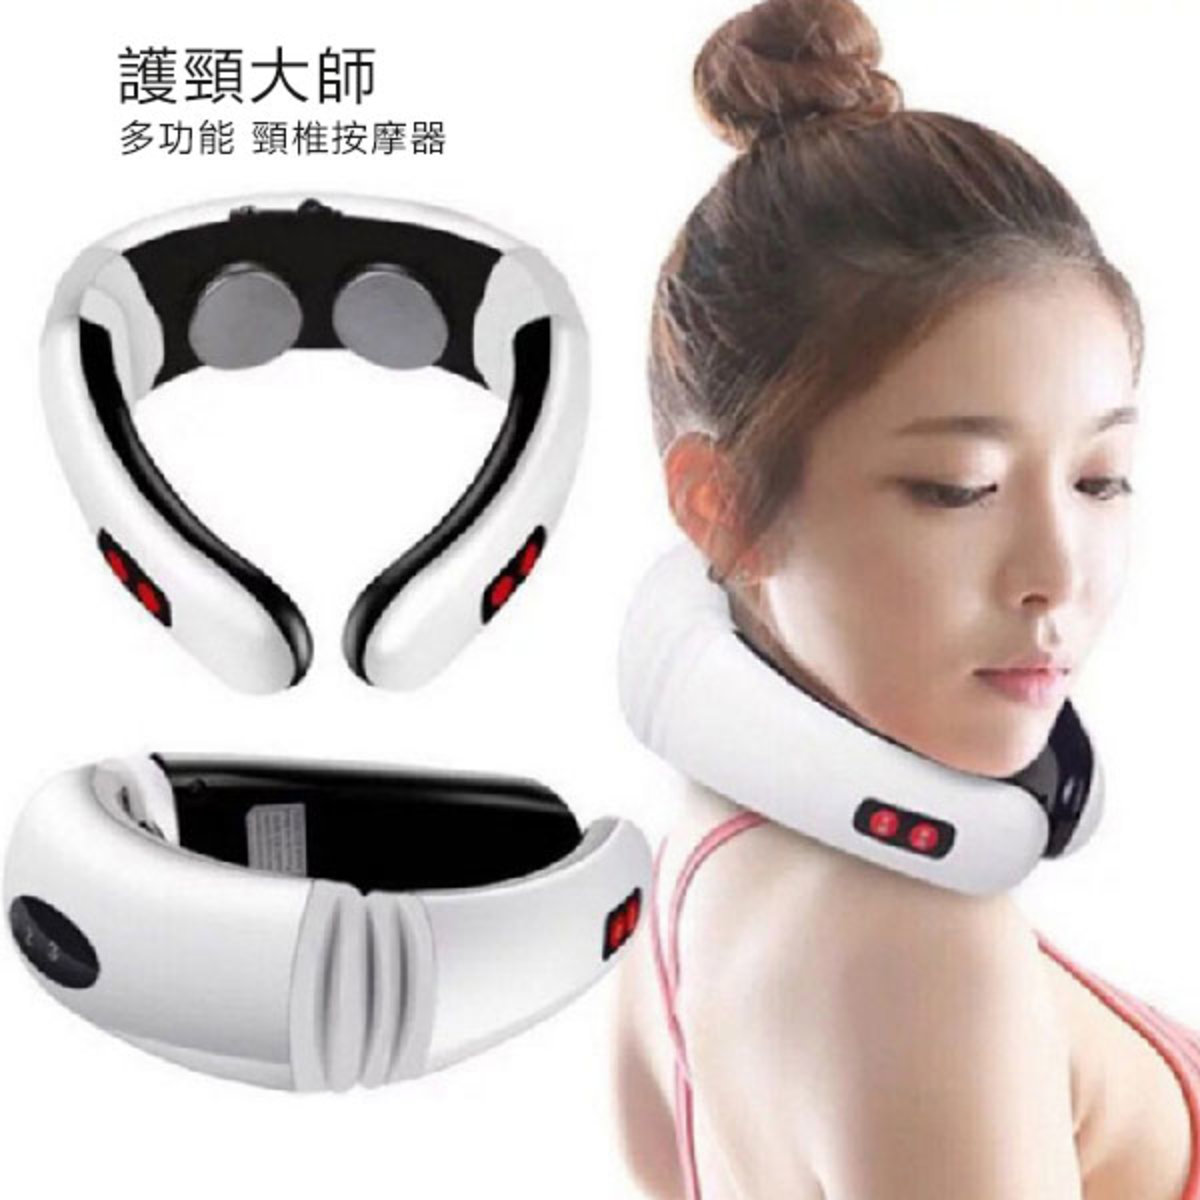 5880 Multifunctional Cervical Massager Meridian